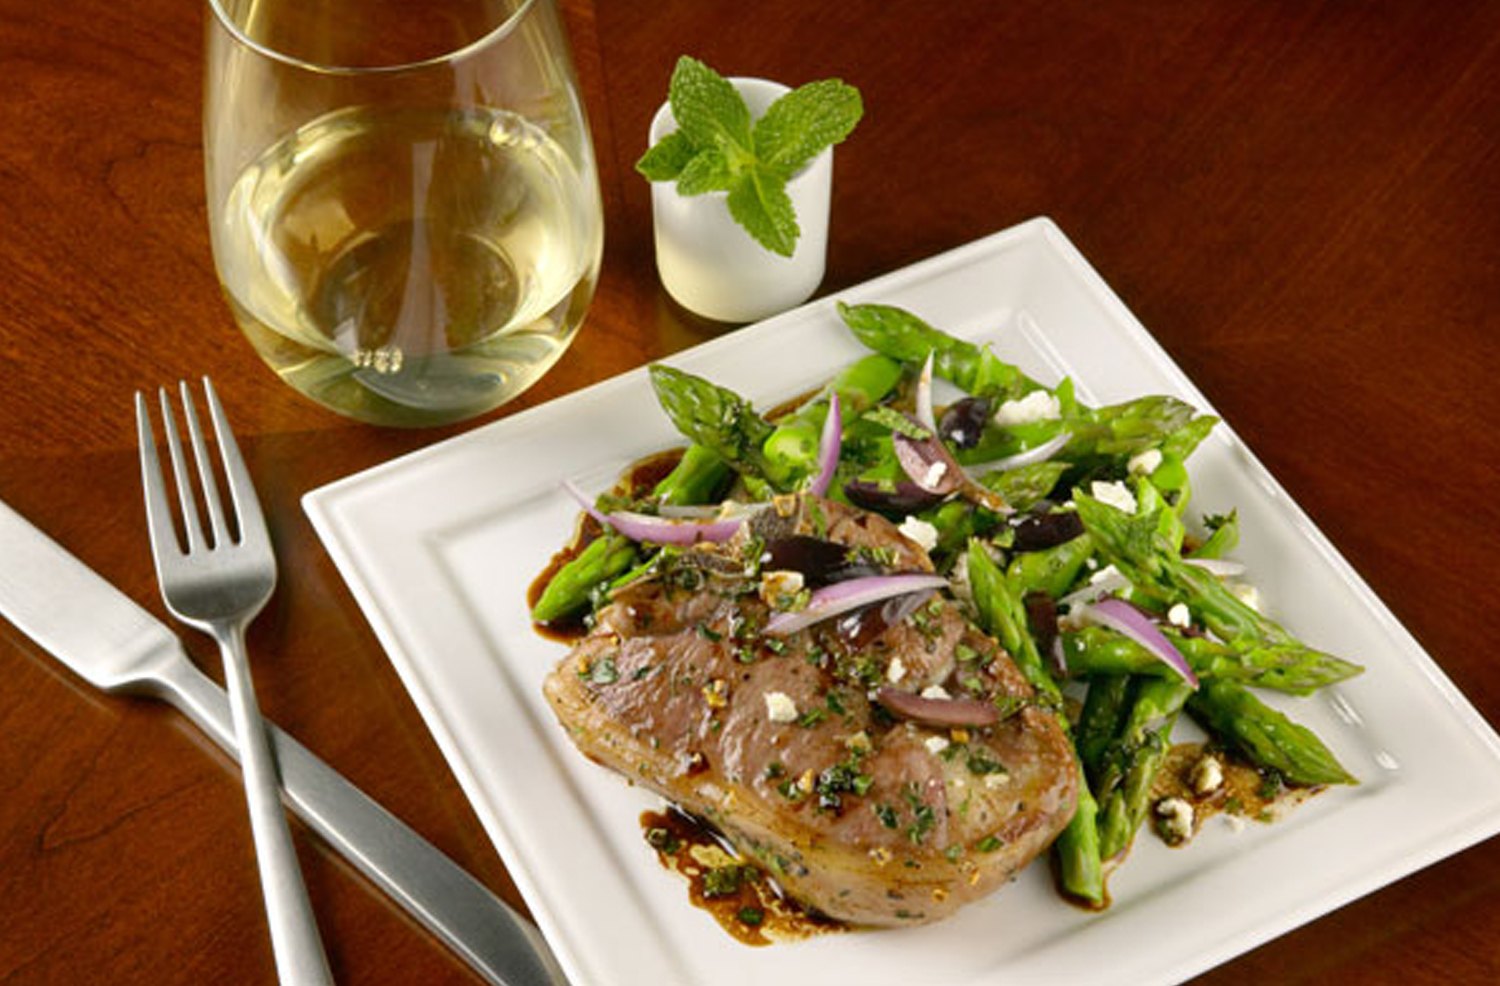 Warm Salad of Asparagus Spears and Seared Lamb Chops with Fresh Mint Vinaigrette